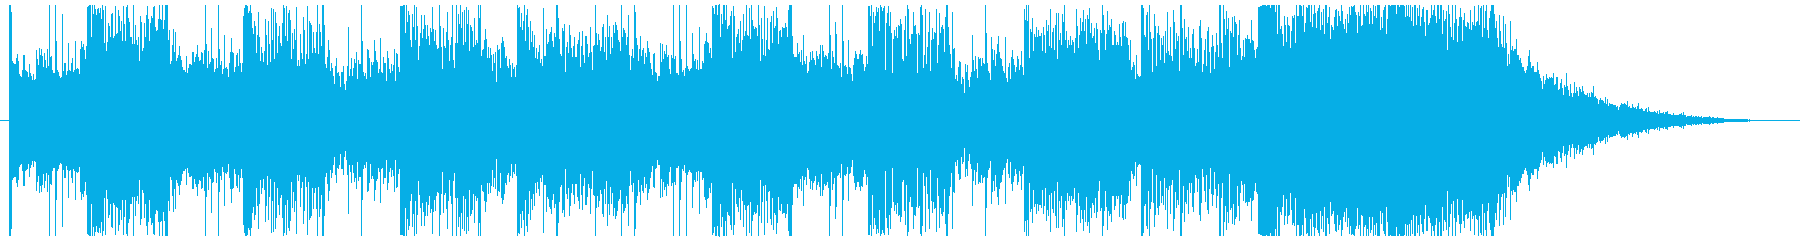 Synth and stylish sound logo's reproduced waveform